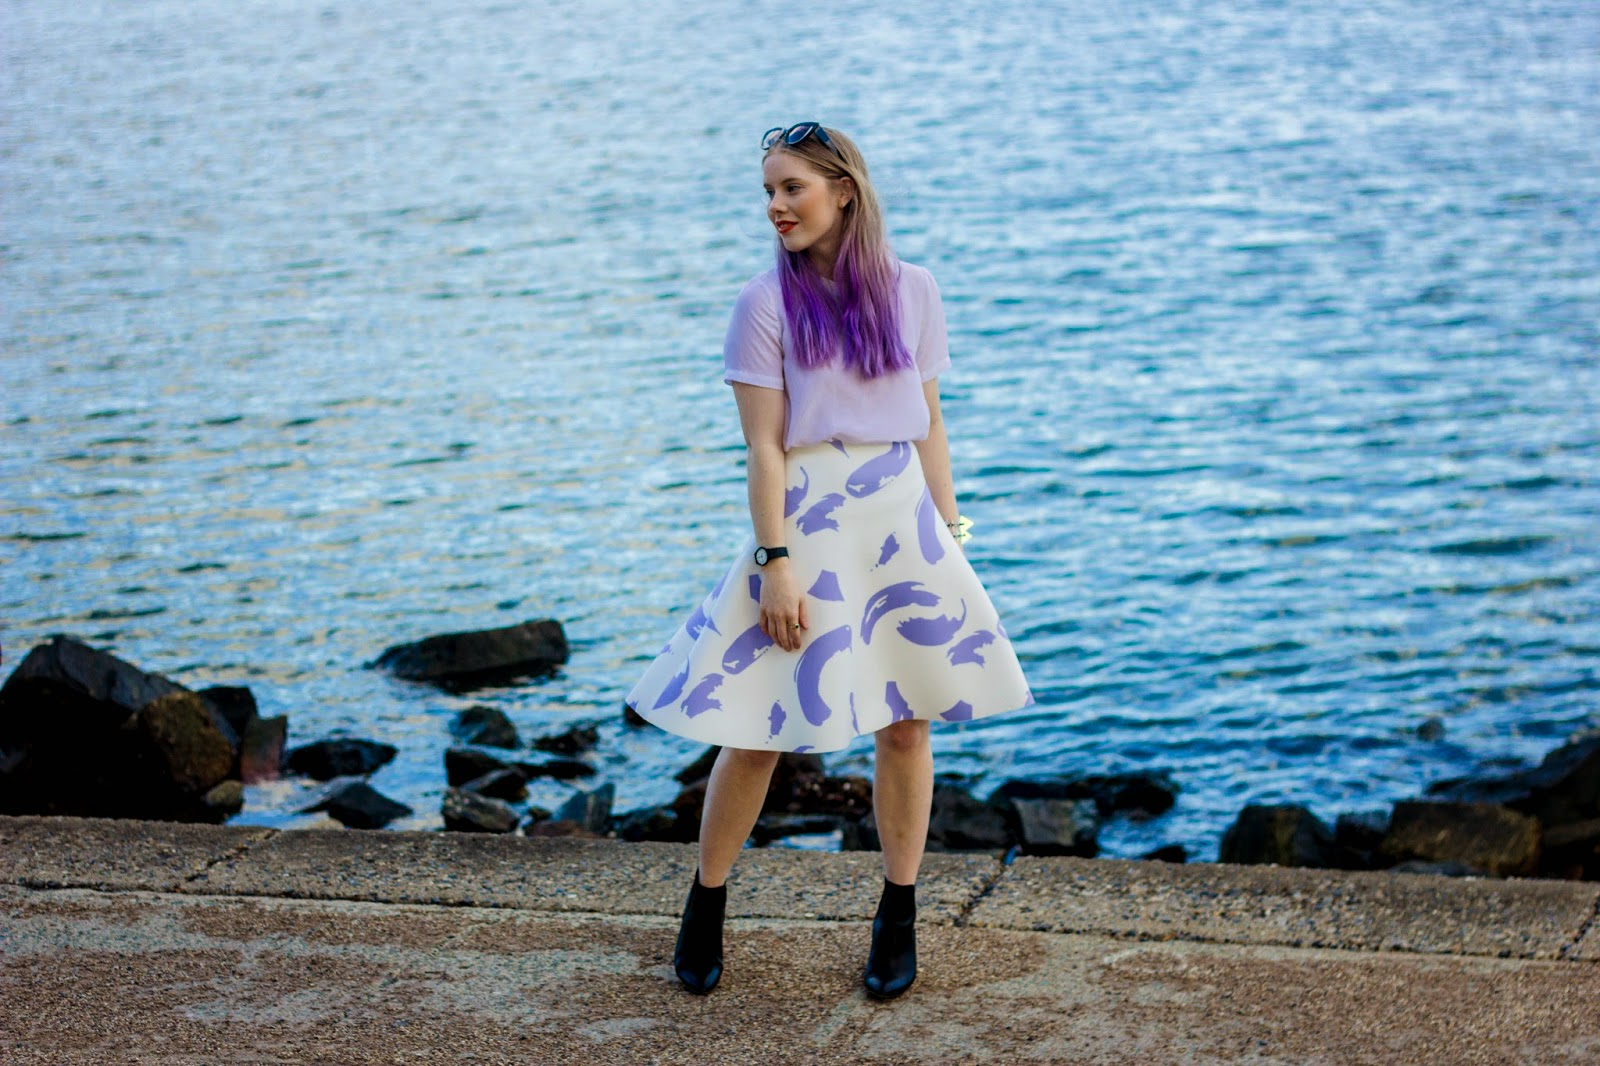 Pip O'Sullivan fashion blog, outsideiscolours, outside is colours blog, Pedestrian Blogster Awards, purple hair, dip dye, ombre hair, Ciara Clark, perspex jewellery, perspex spike bracelet, iridescent, Brisbane fashion blogger, Sheike, Celine paint strokes skirt, Sheike lilac paint strokes skirt, Glassons silk t-shirt, ASOS leather boots, ASOS Einstein boots black, scuba midi skirt, scuba circle skirt, fashion blogger